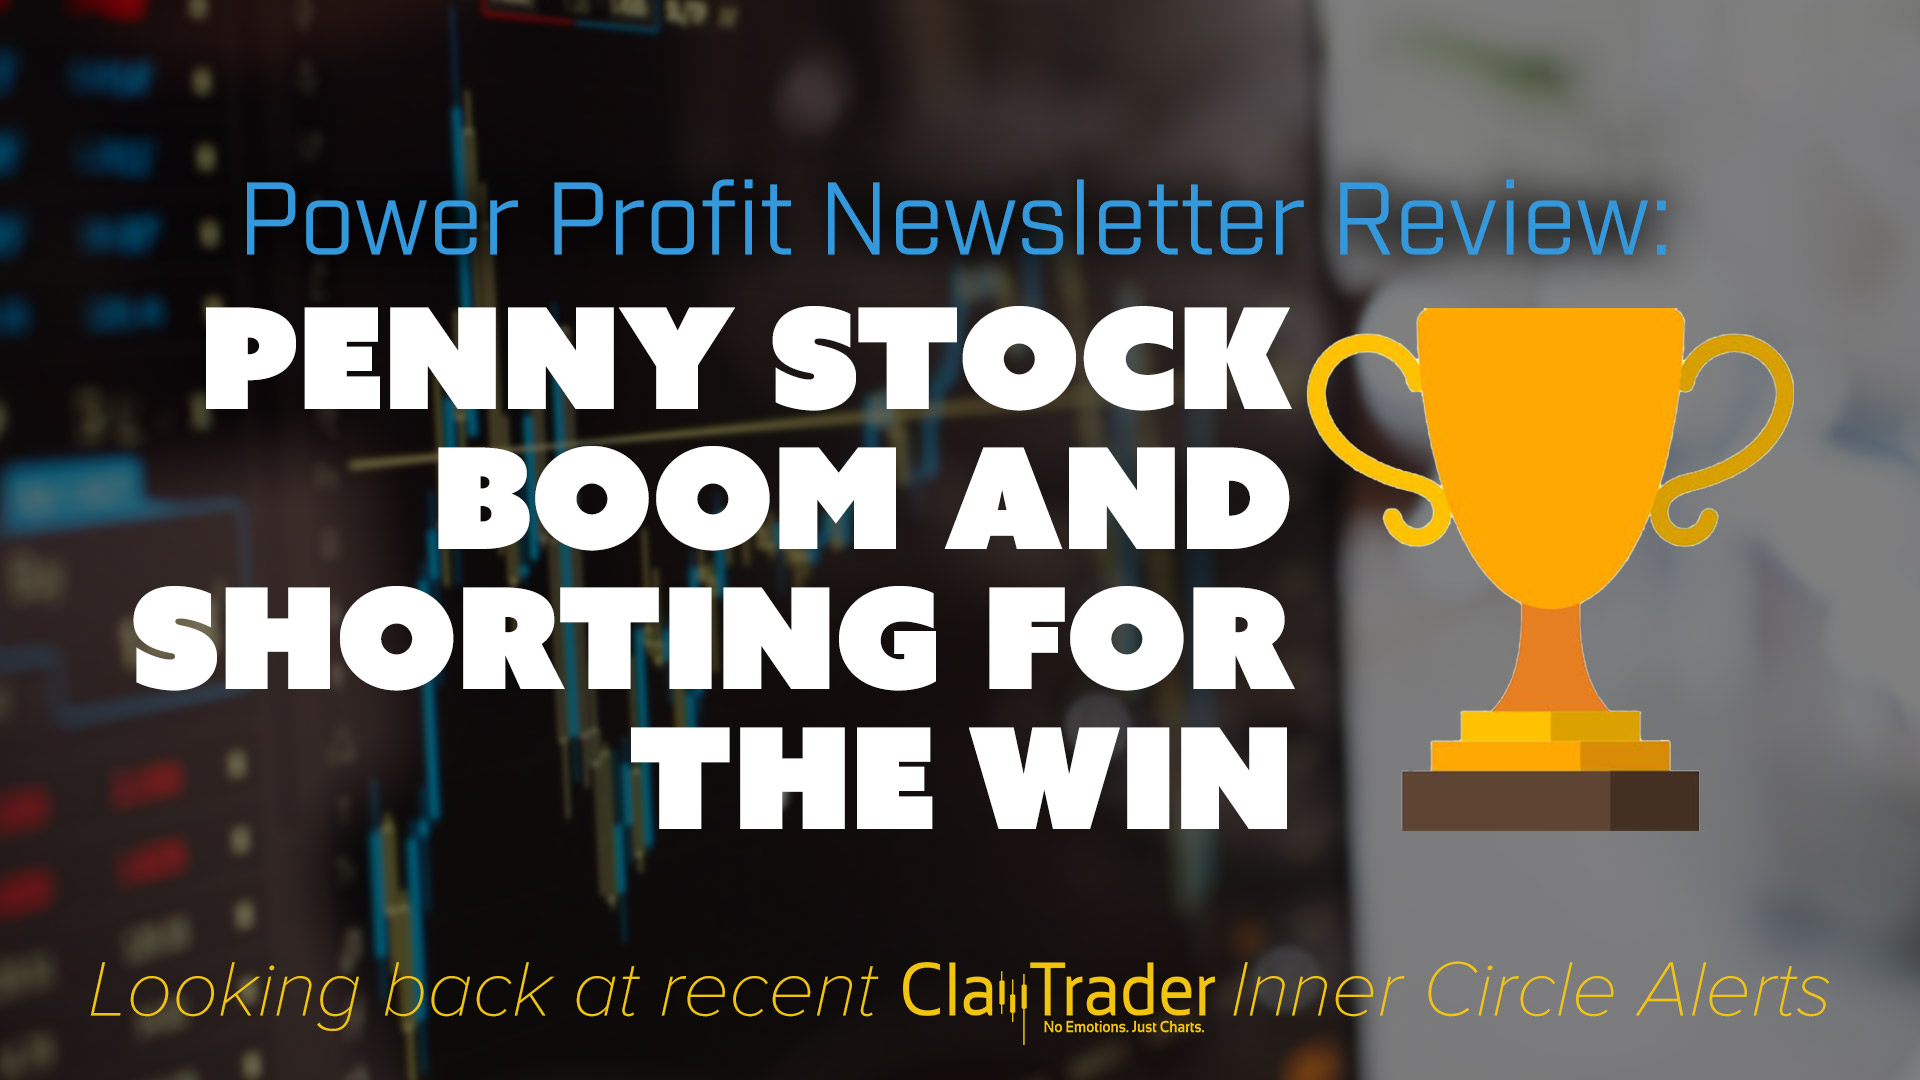 Penny Stock Boom and Shorting for the Win